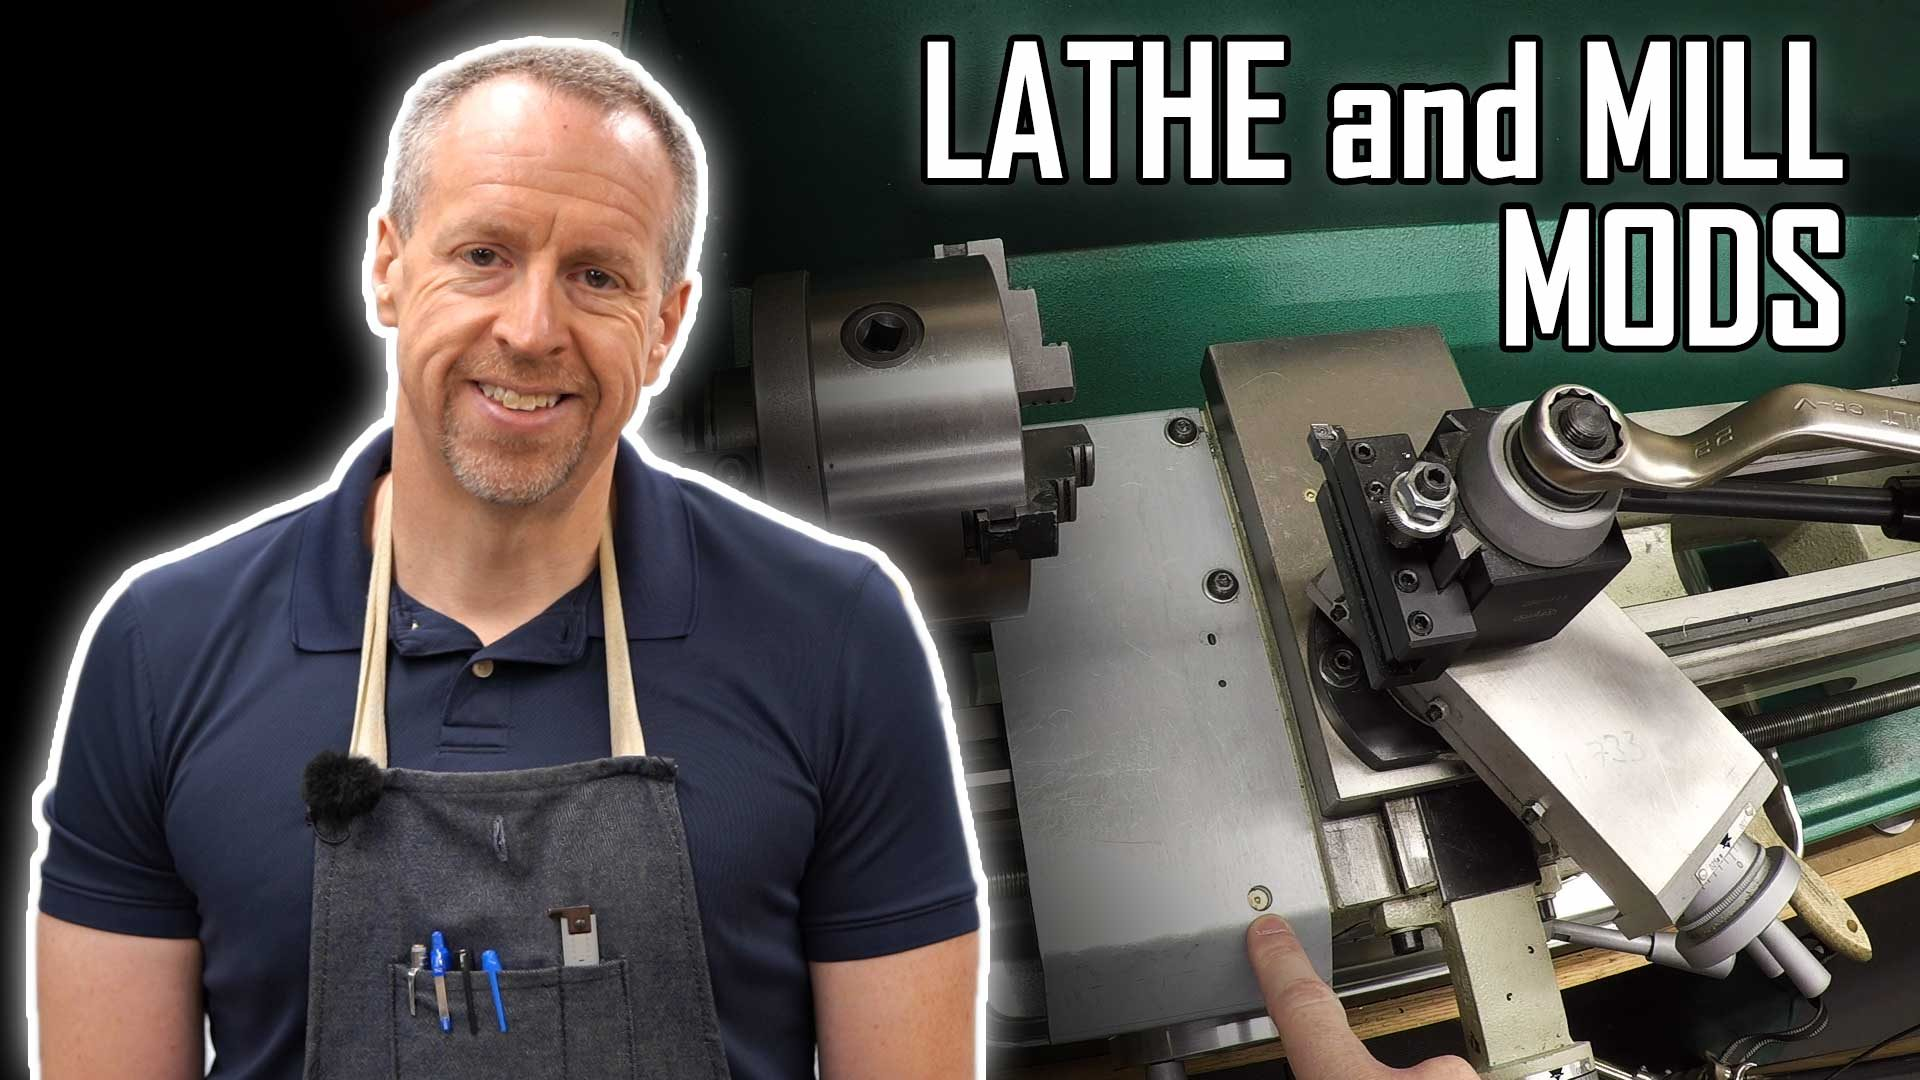 More Easy Improvements For Your Lathe and Mill